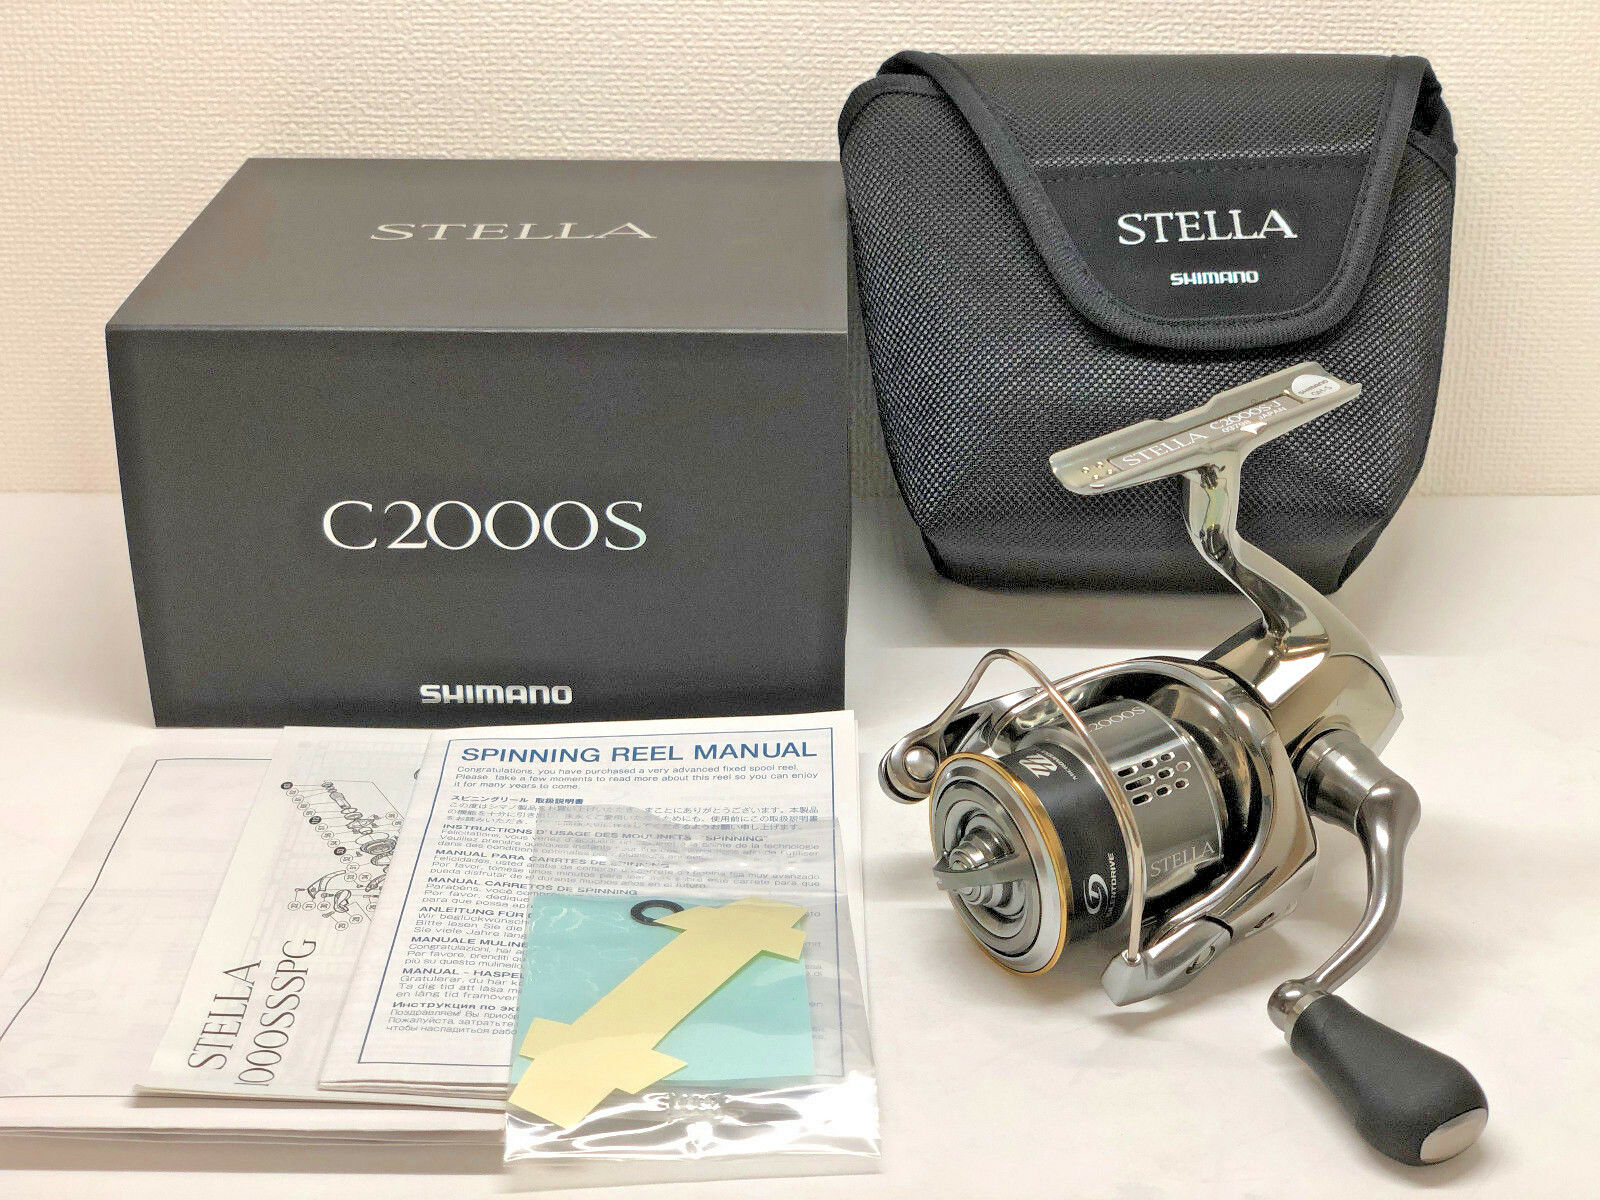 SHIMANO 18 STELLA C2000S  - Free Shipping from Japan